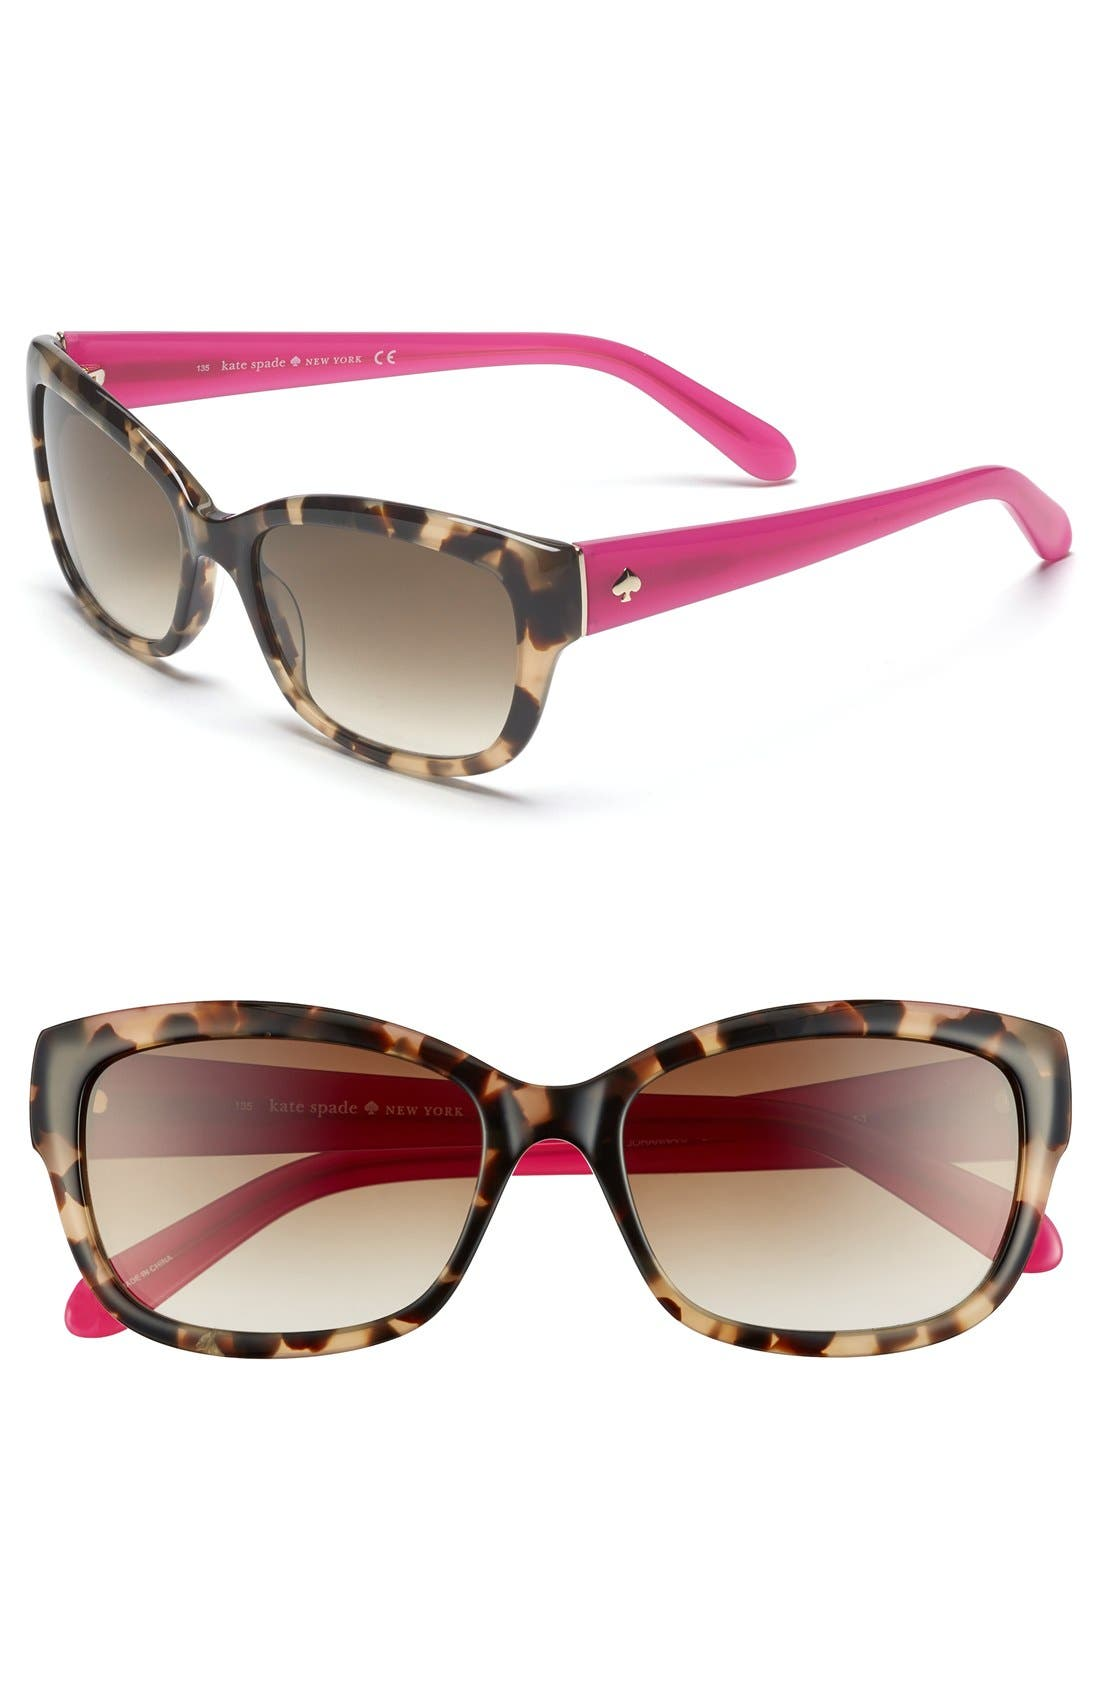 KATE SPADE NEW YORK kate spade johanna 53mm retro sunglasses